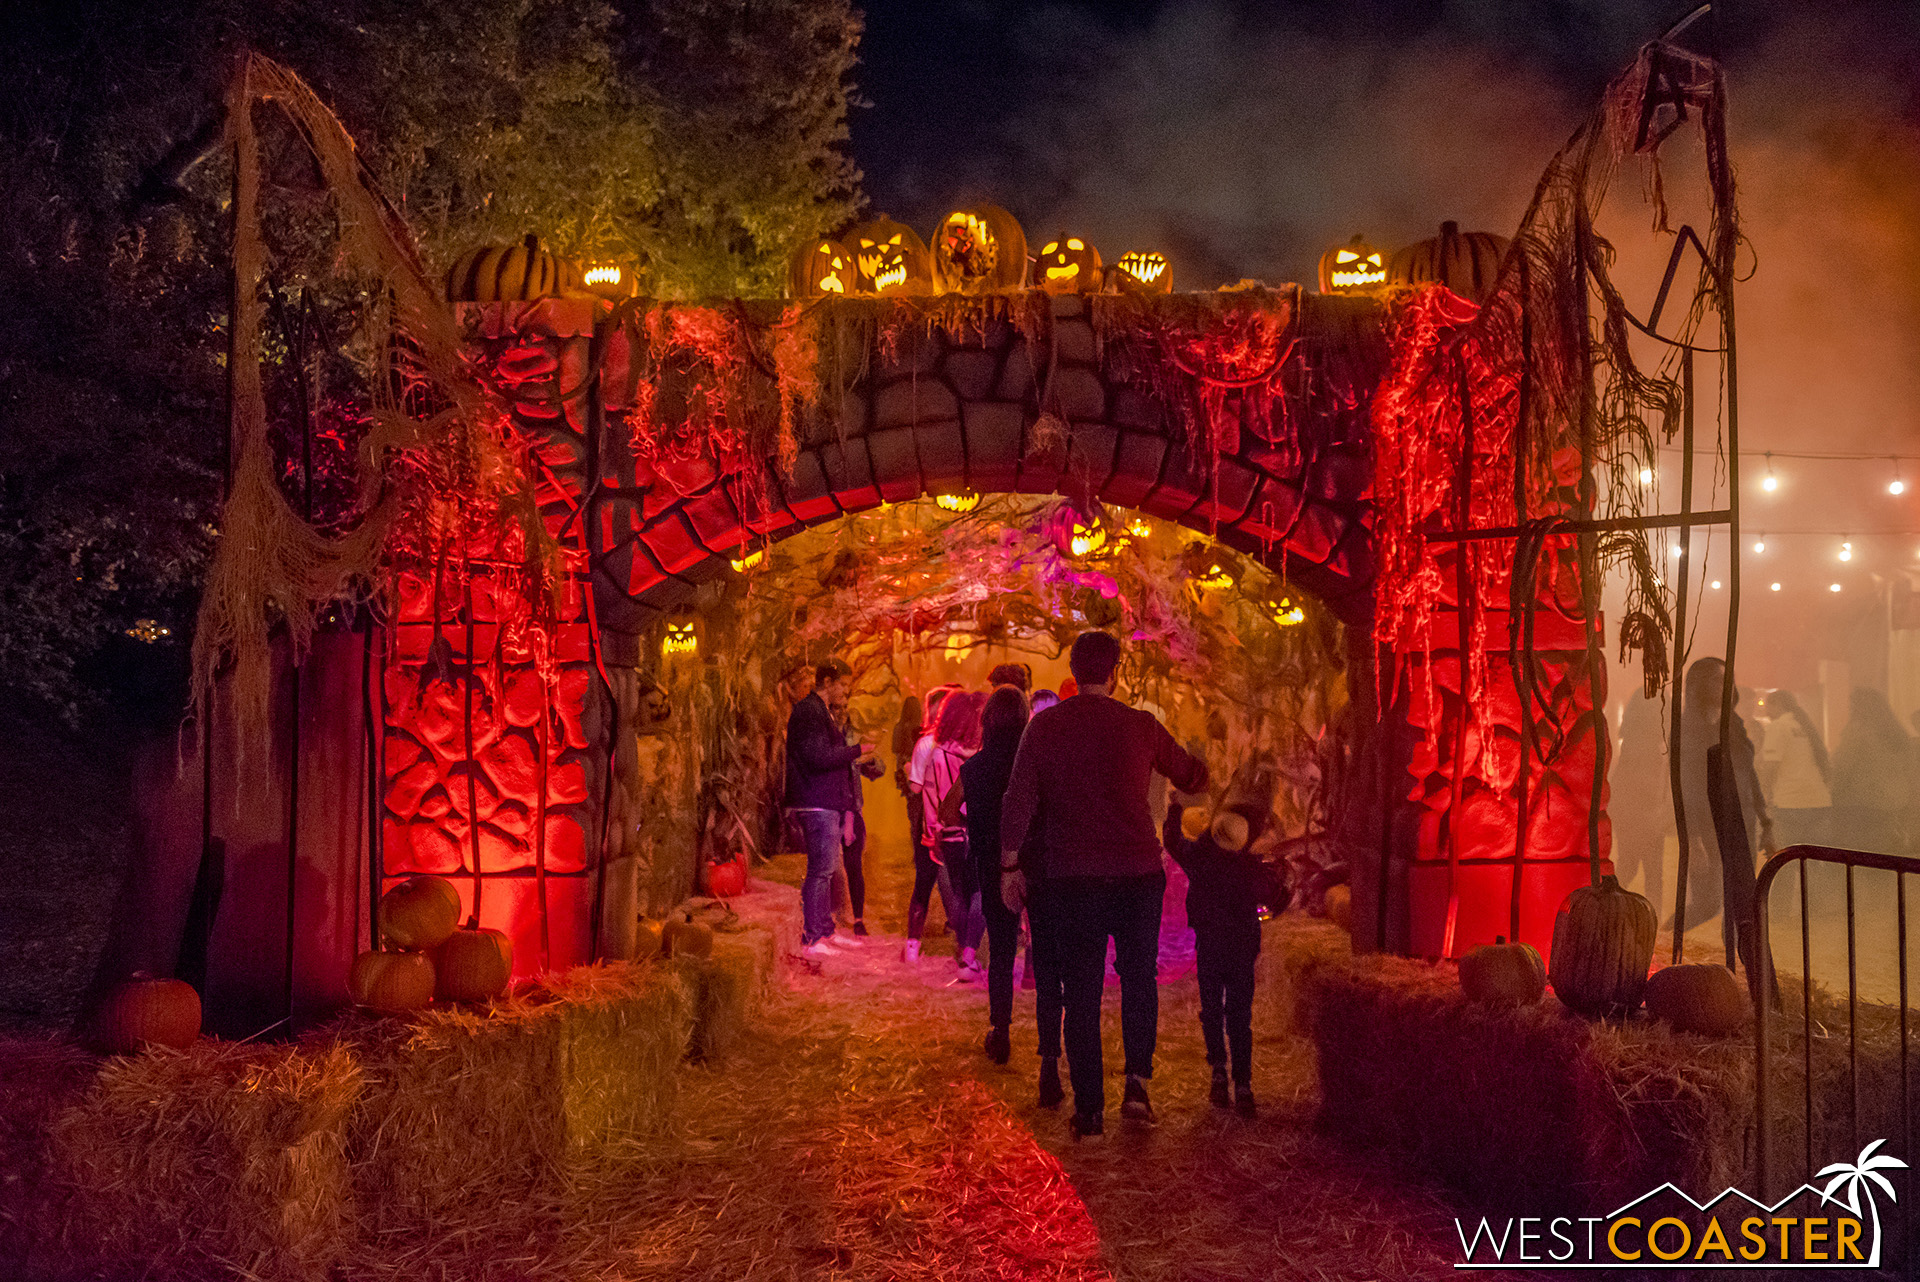 Welcome to the 1985 Halloween Festival at Midnight Falls!